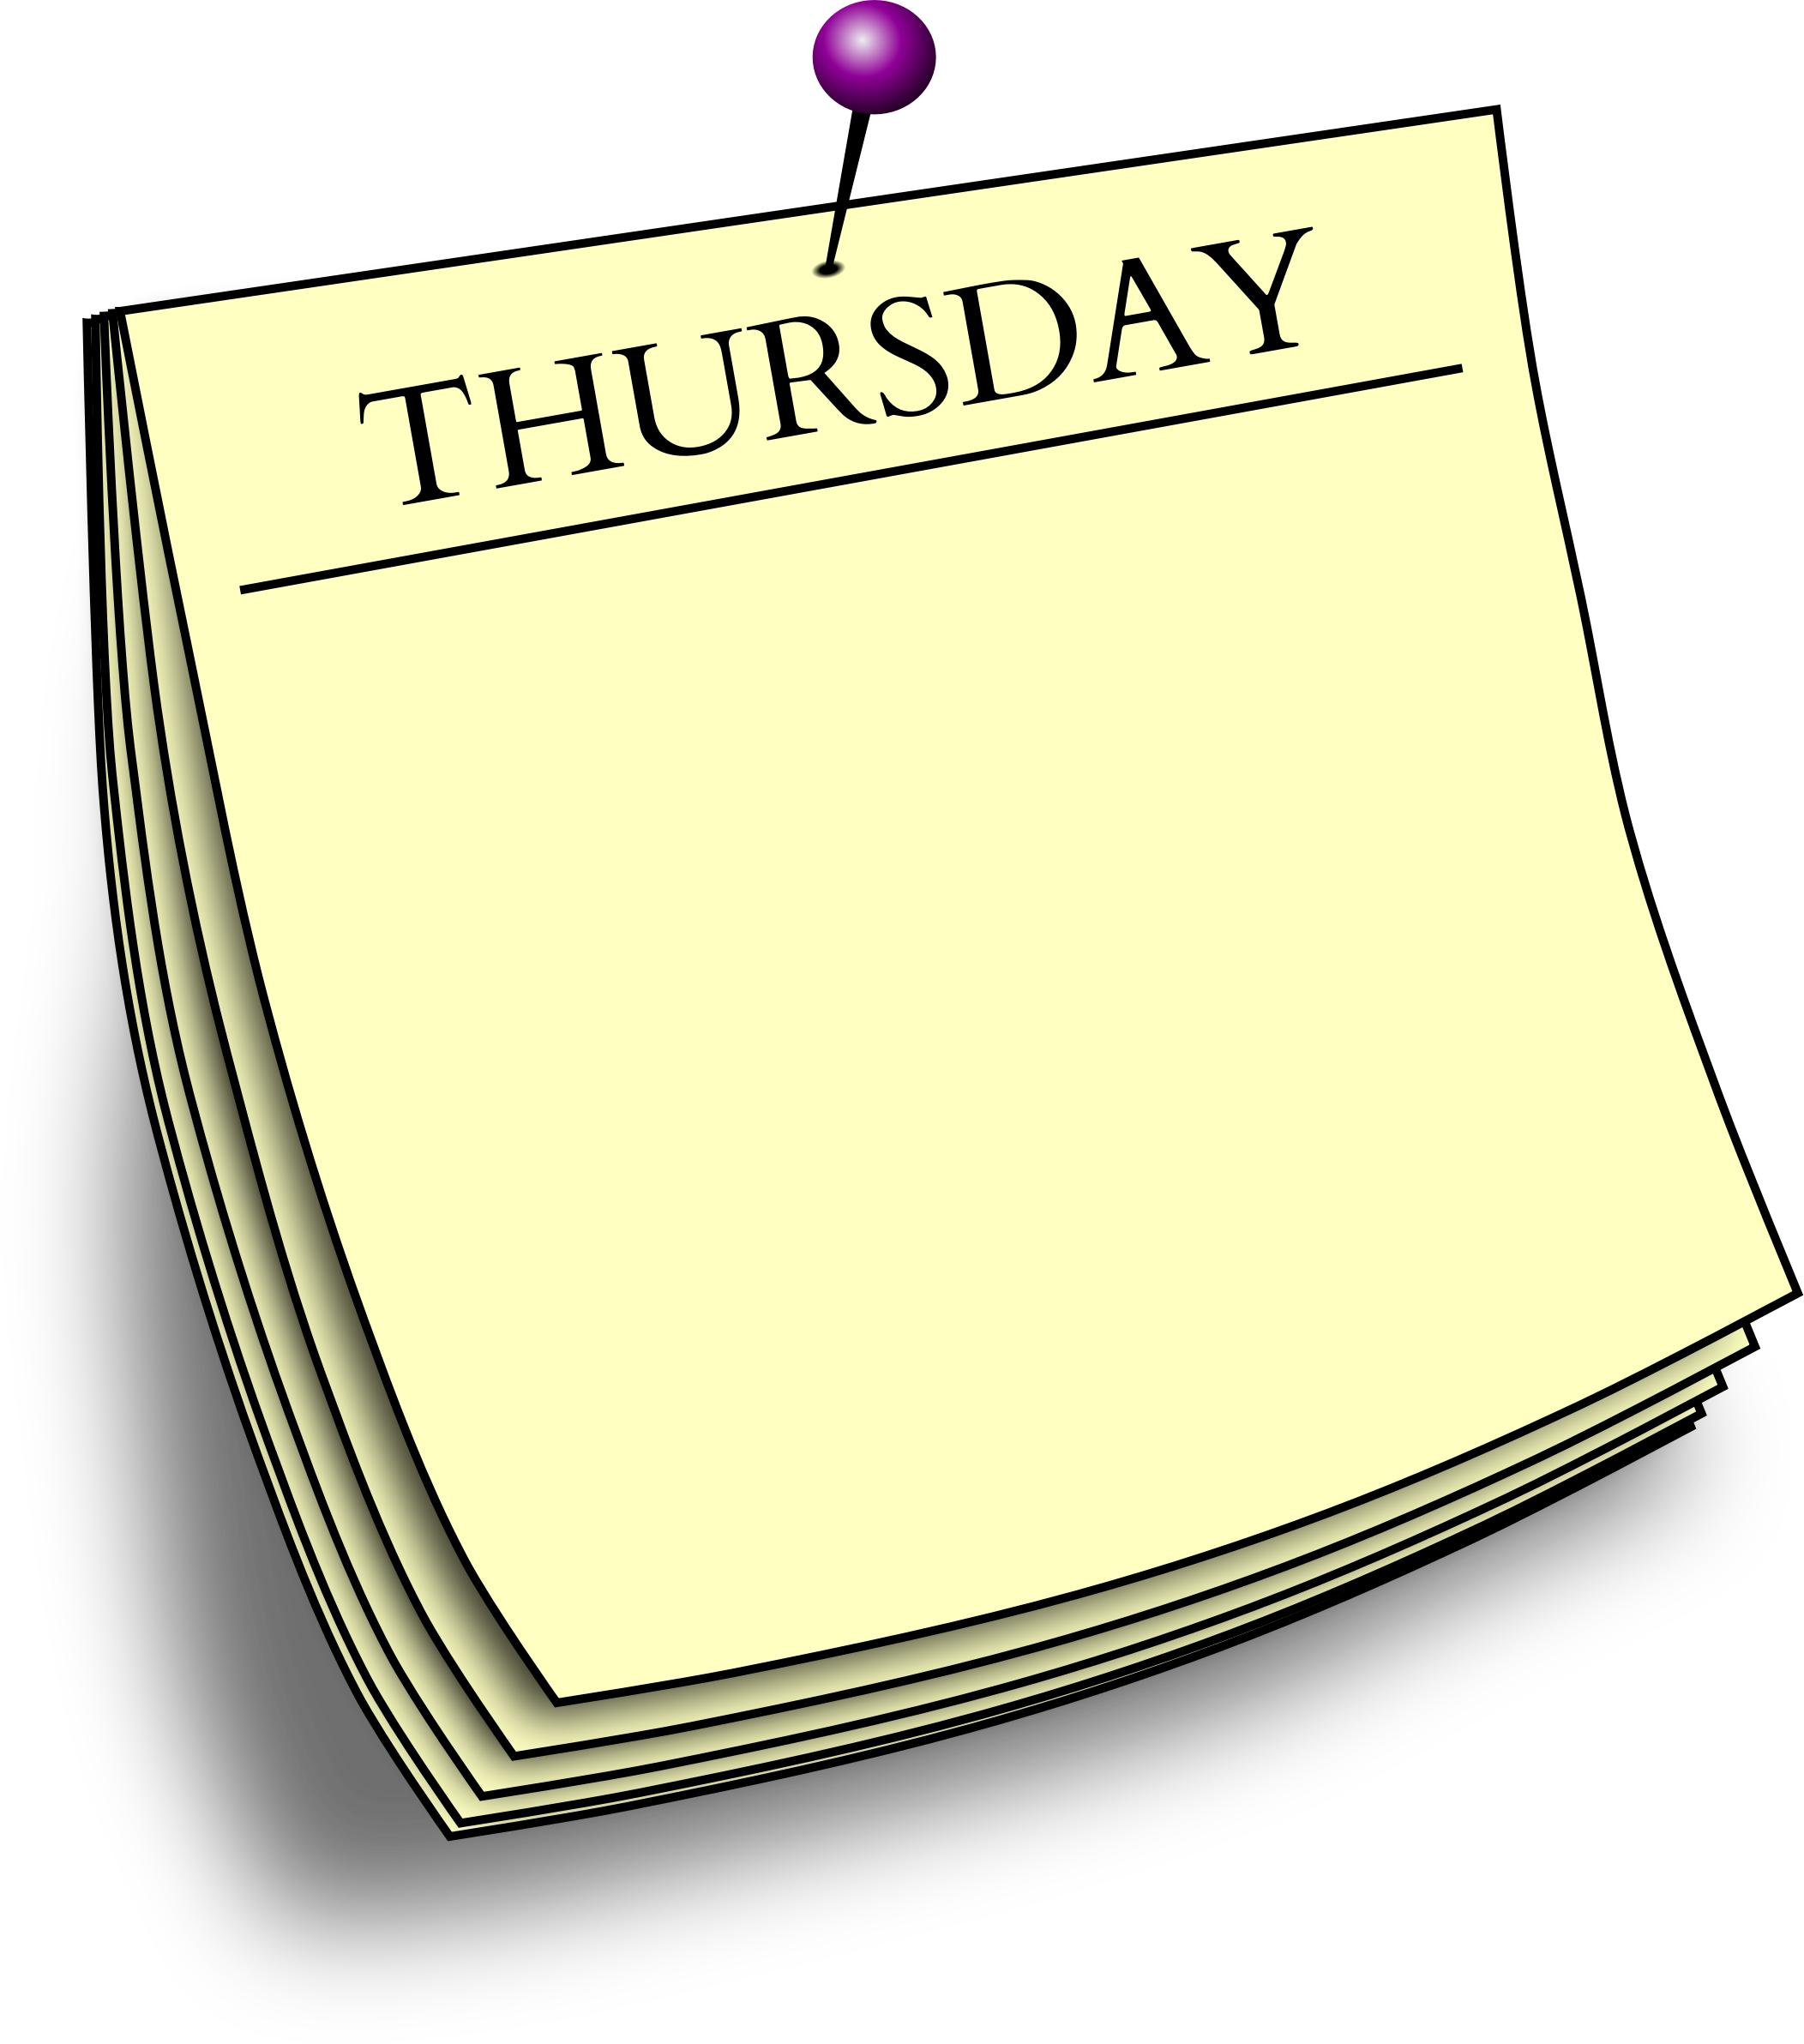 Daily note - Thursday by Firkin